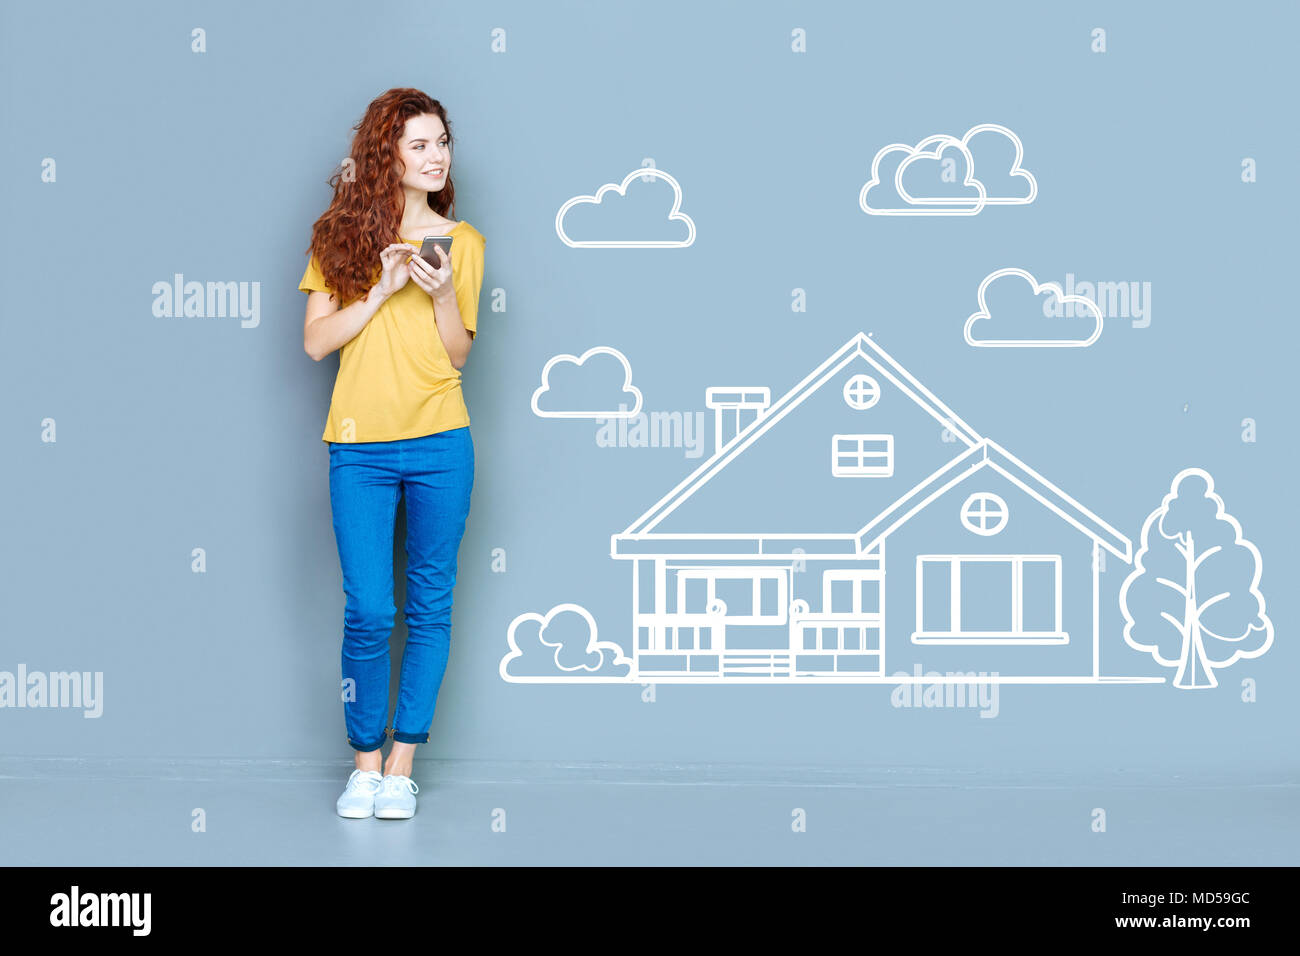 Pretty woman holding a smartphone and planning buying a house - Stock Image